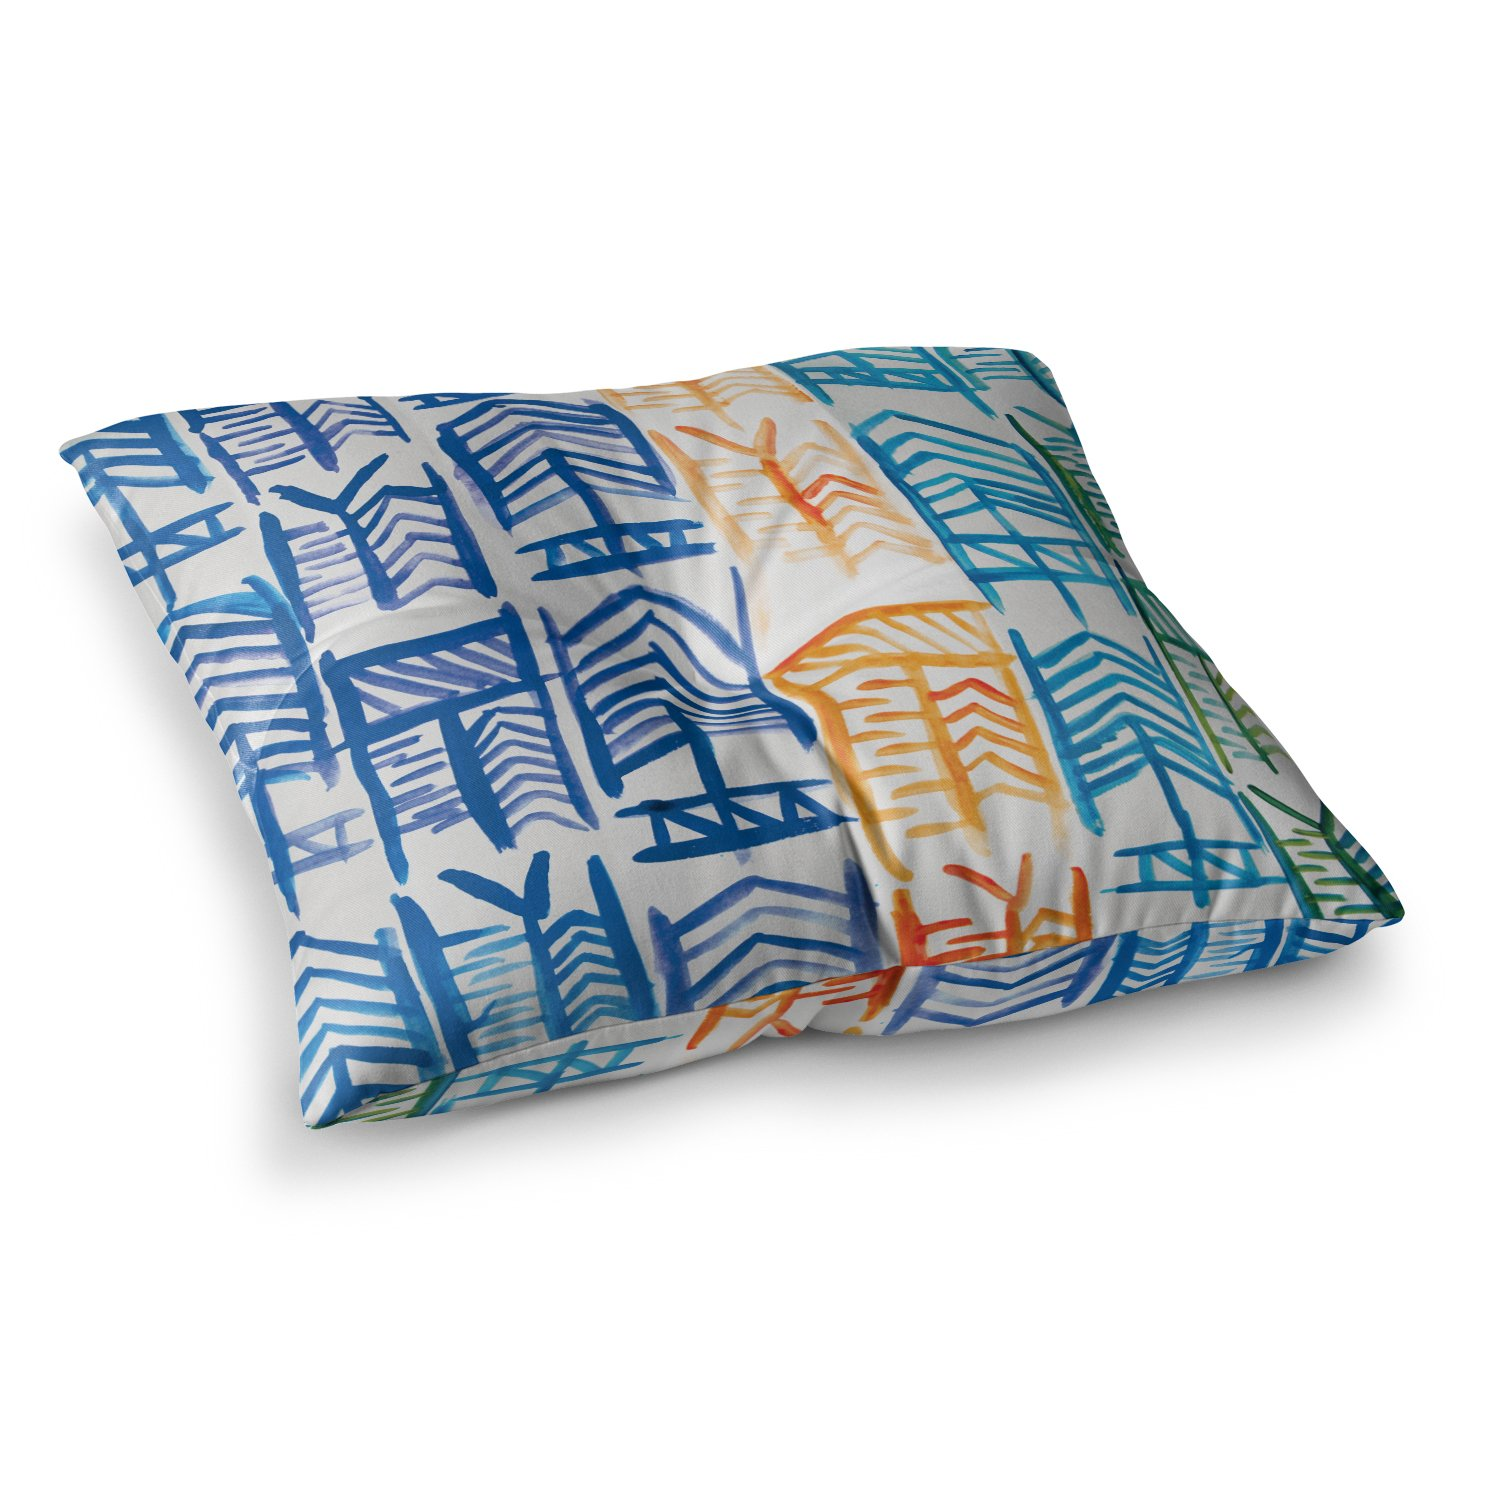 Kess InHouse Theresa Giolzetti Quiver II, 23' x 23' Square Floor Pillow